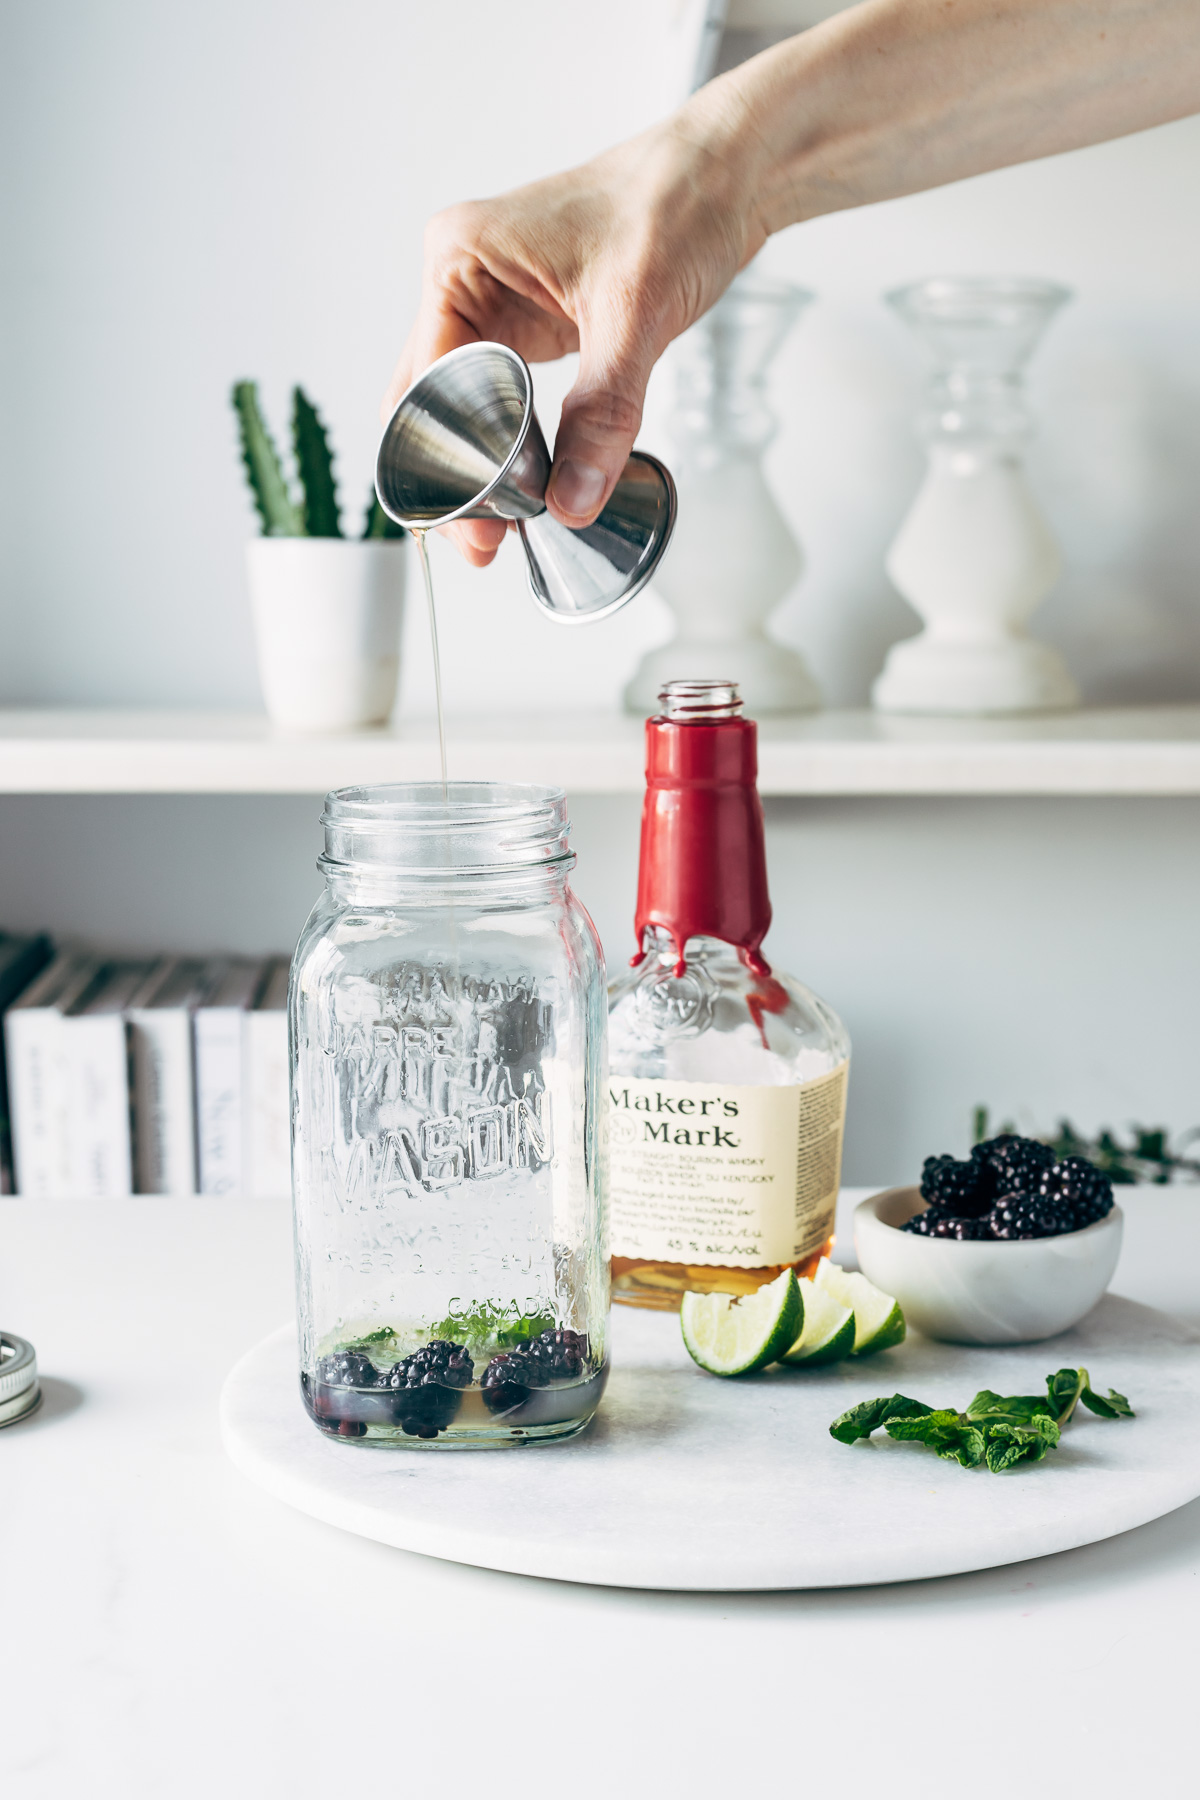 A person pouring bourbon into a mason jar with blackberries and mint leaves.